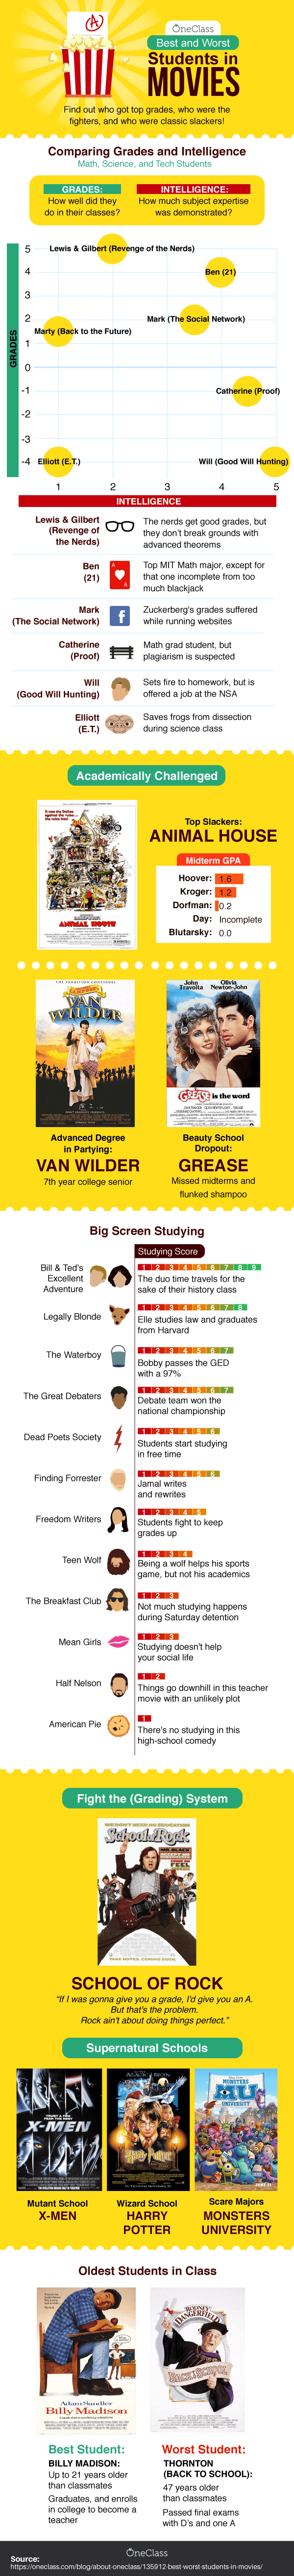 Best and Worst Students in Movies